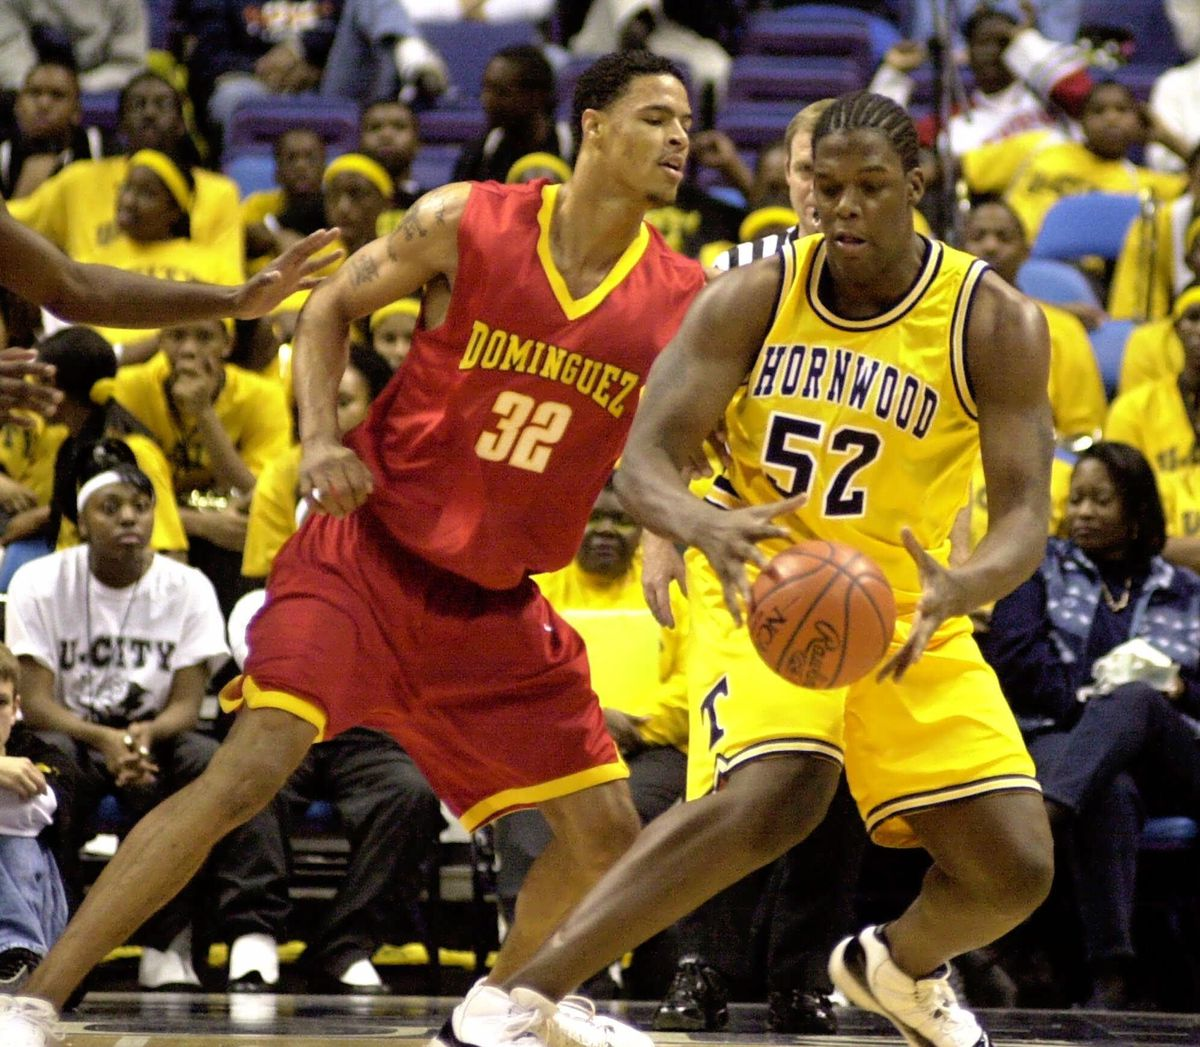 Thornwood's Eddy Curry (52) sets to make a move against Dominguez High School's Tyson Chandler (32) during the first half of the High School Shootout at the Savvis Center in St. Louis Thursday, Dec. 7, 2000.